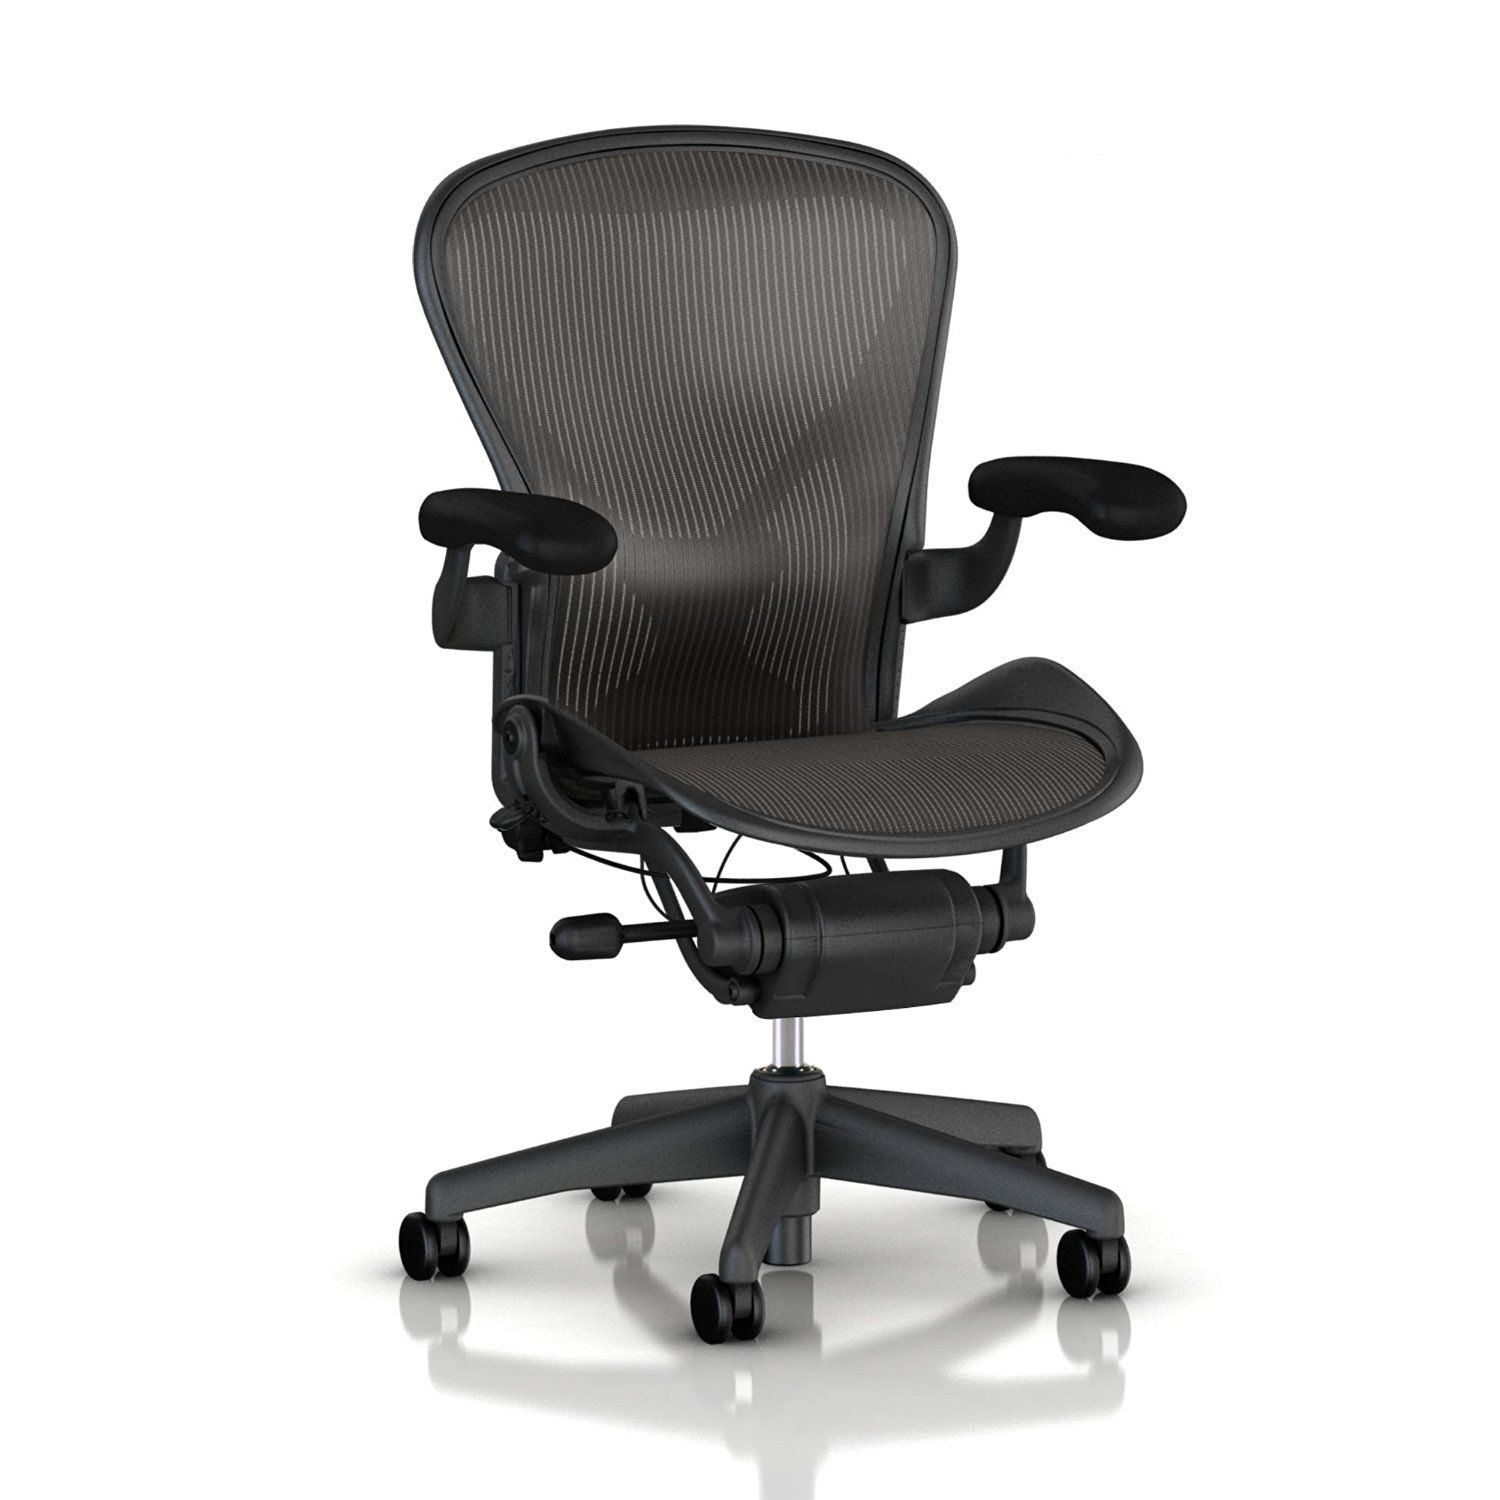 Good office chairs ergonomic - Ergonomic Office Chair